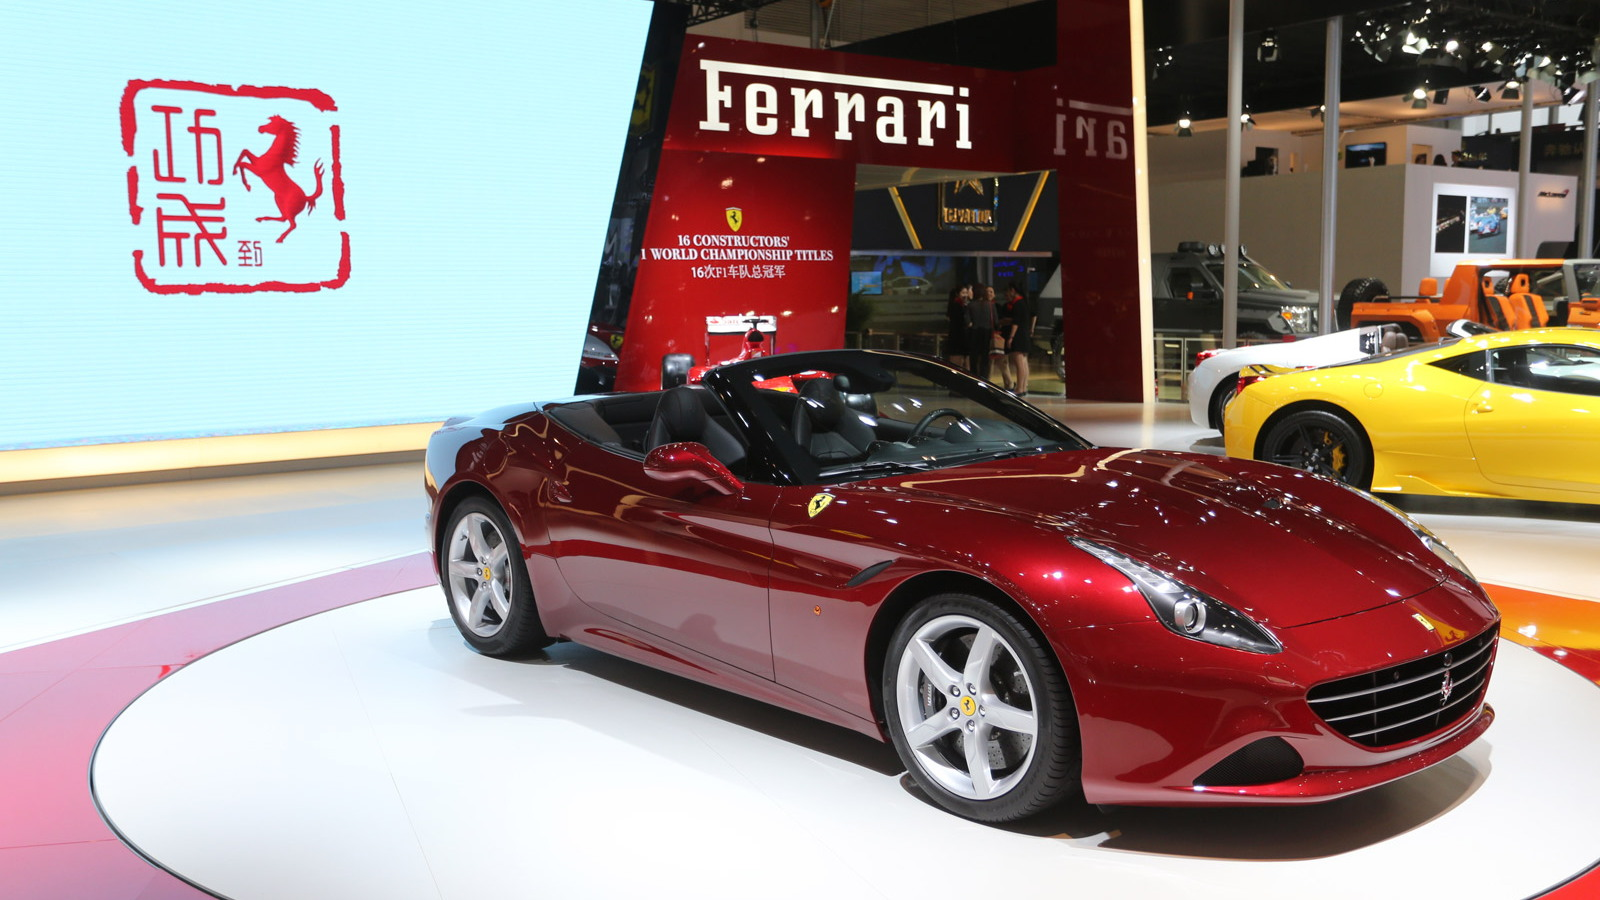 Ferrari Chinese year of the horse logo unveiled at 2014 Beijing Auto Show